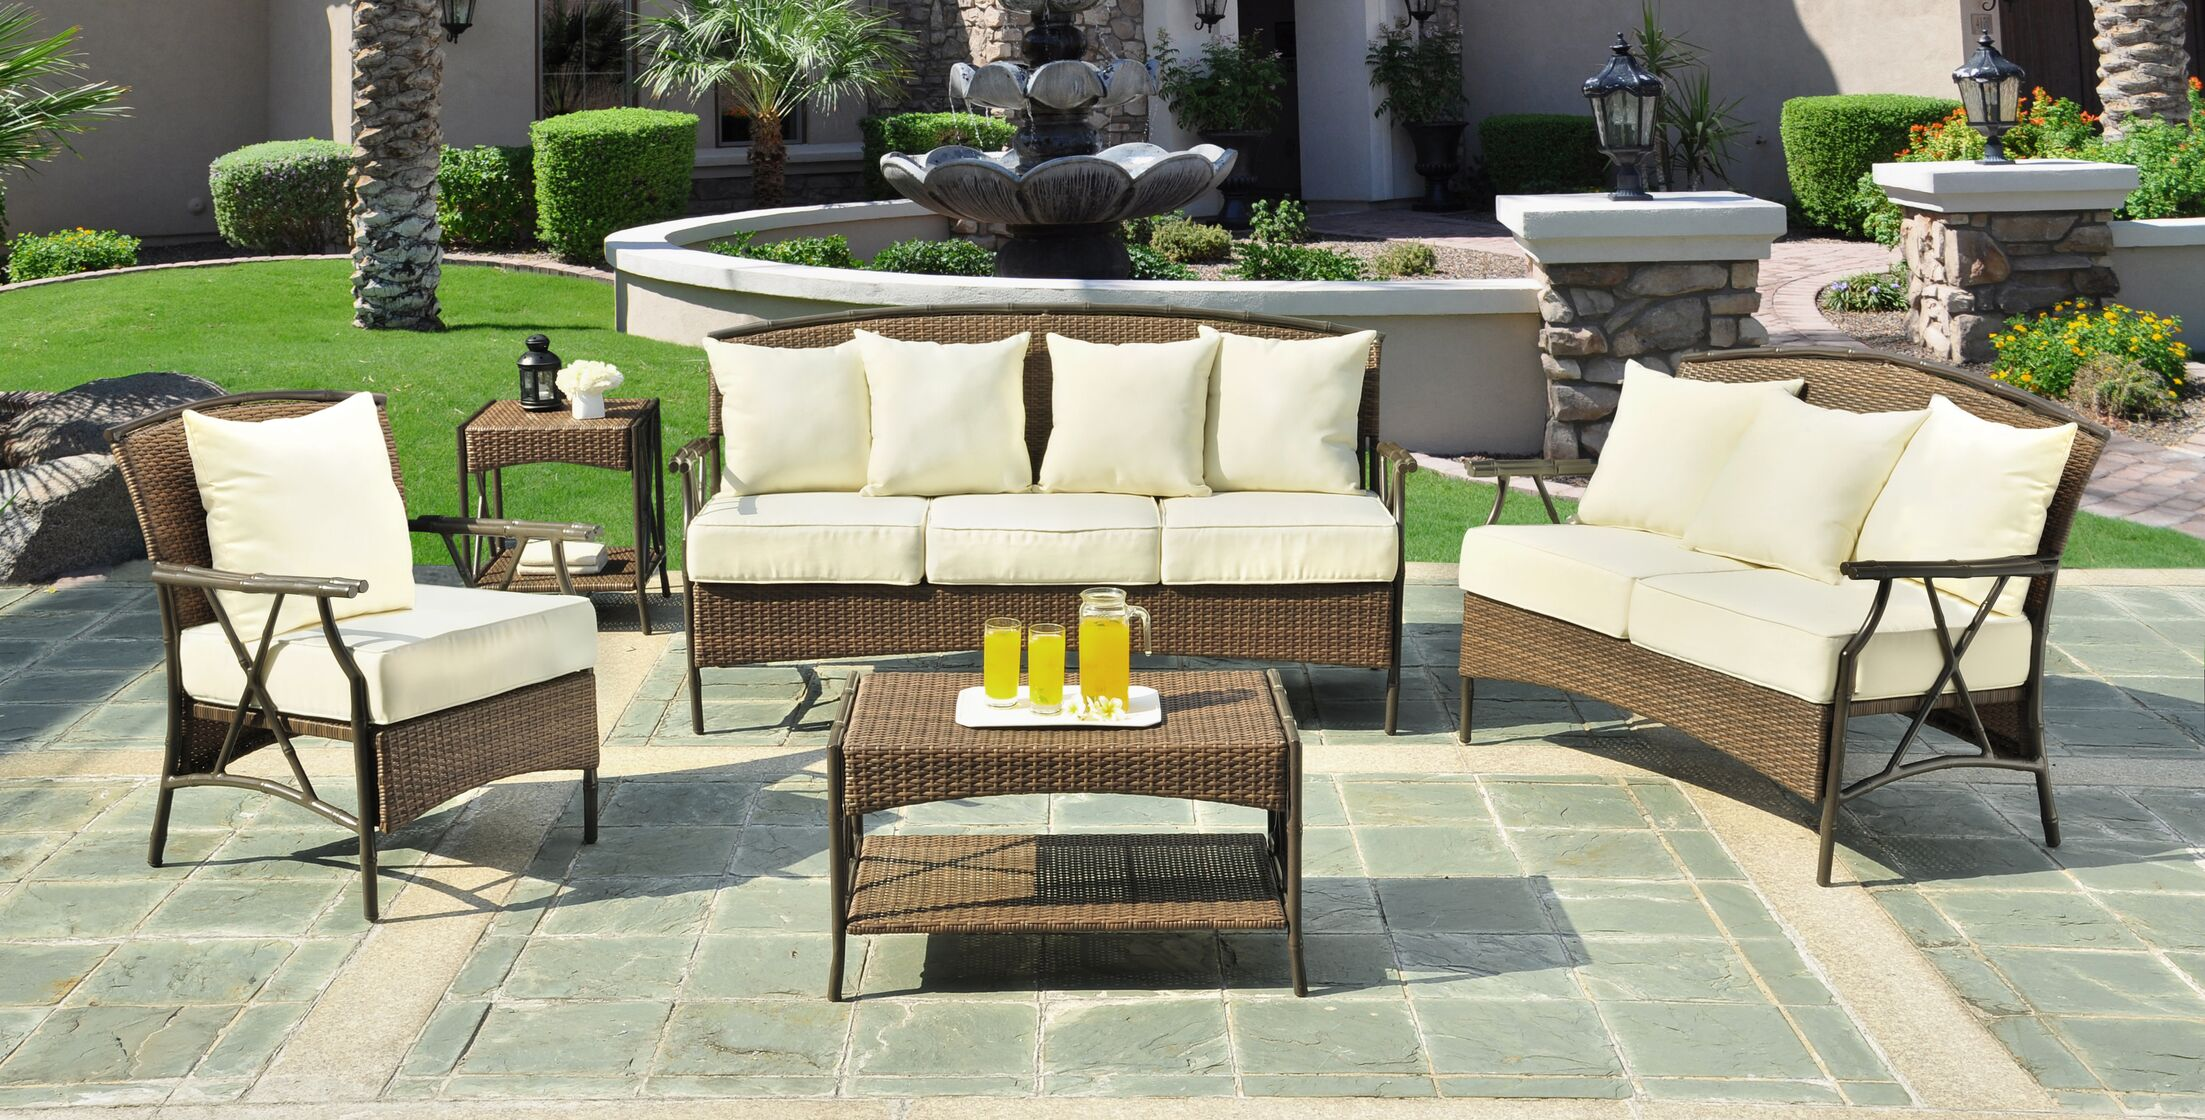 Rum Cay 5 Piece Sunbrella Sofa Set with Cushions